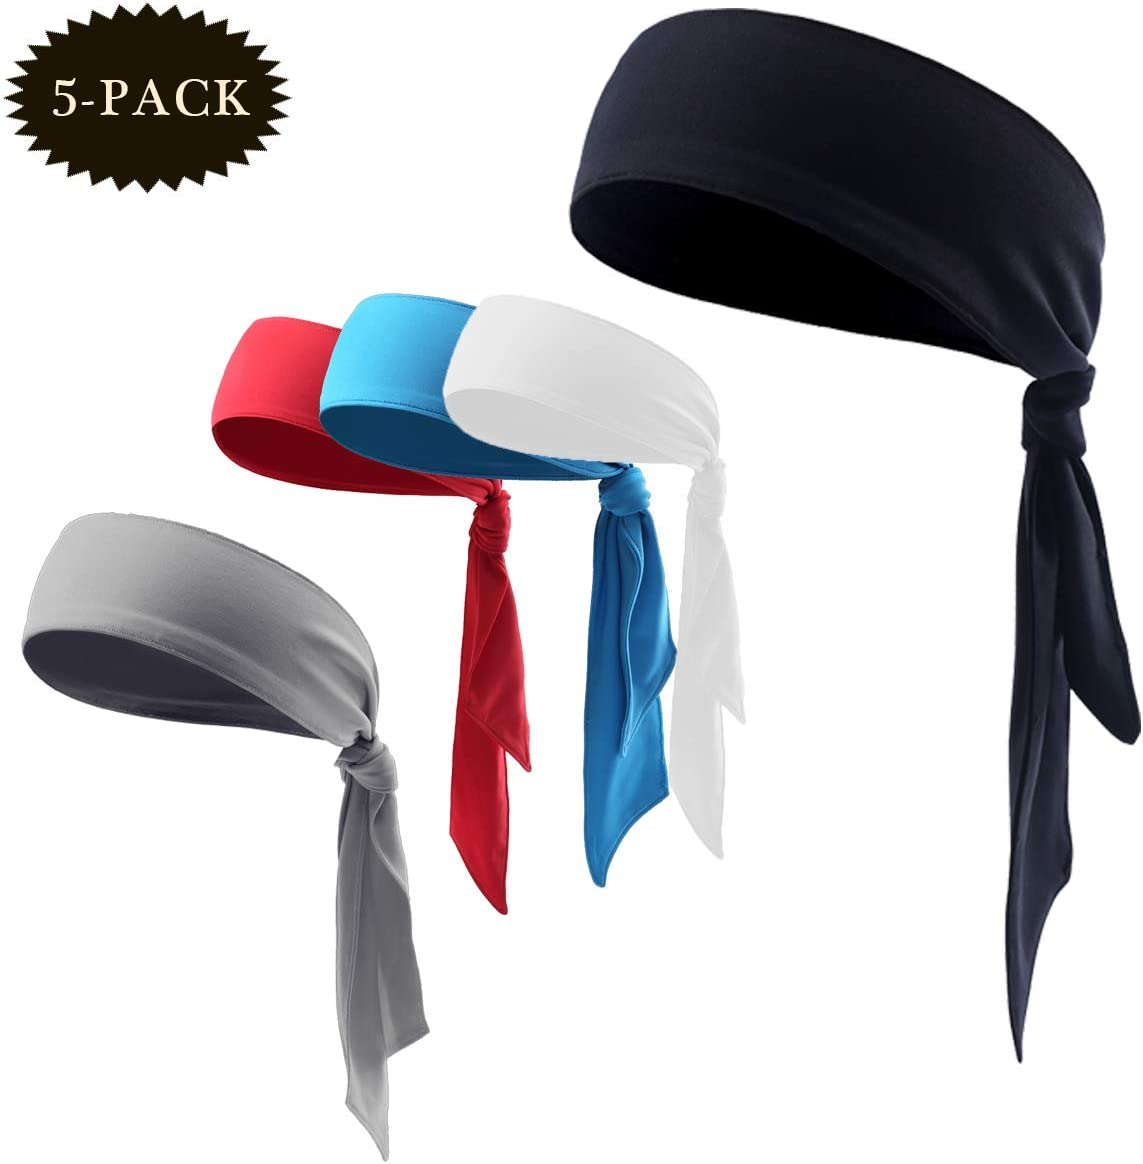 with Moisture Wicking /& Non Slip Sports Headband for Running SHIJI Sports Head Tie for Women Men Working Out Tennis and Premium Sweatband for Hairband with Performance Stretch.